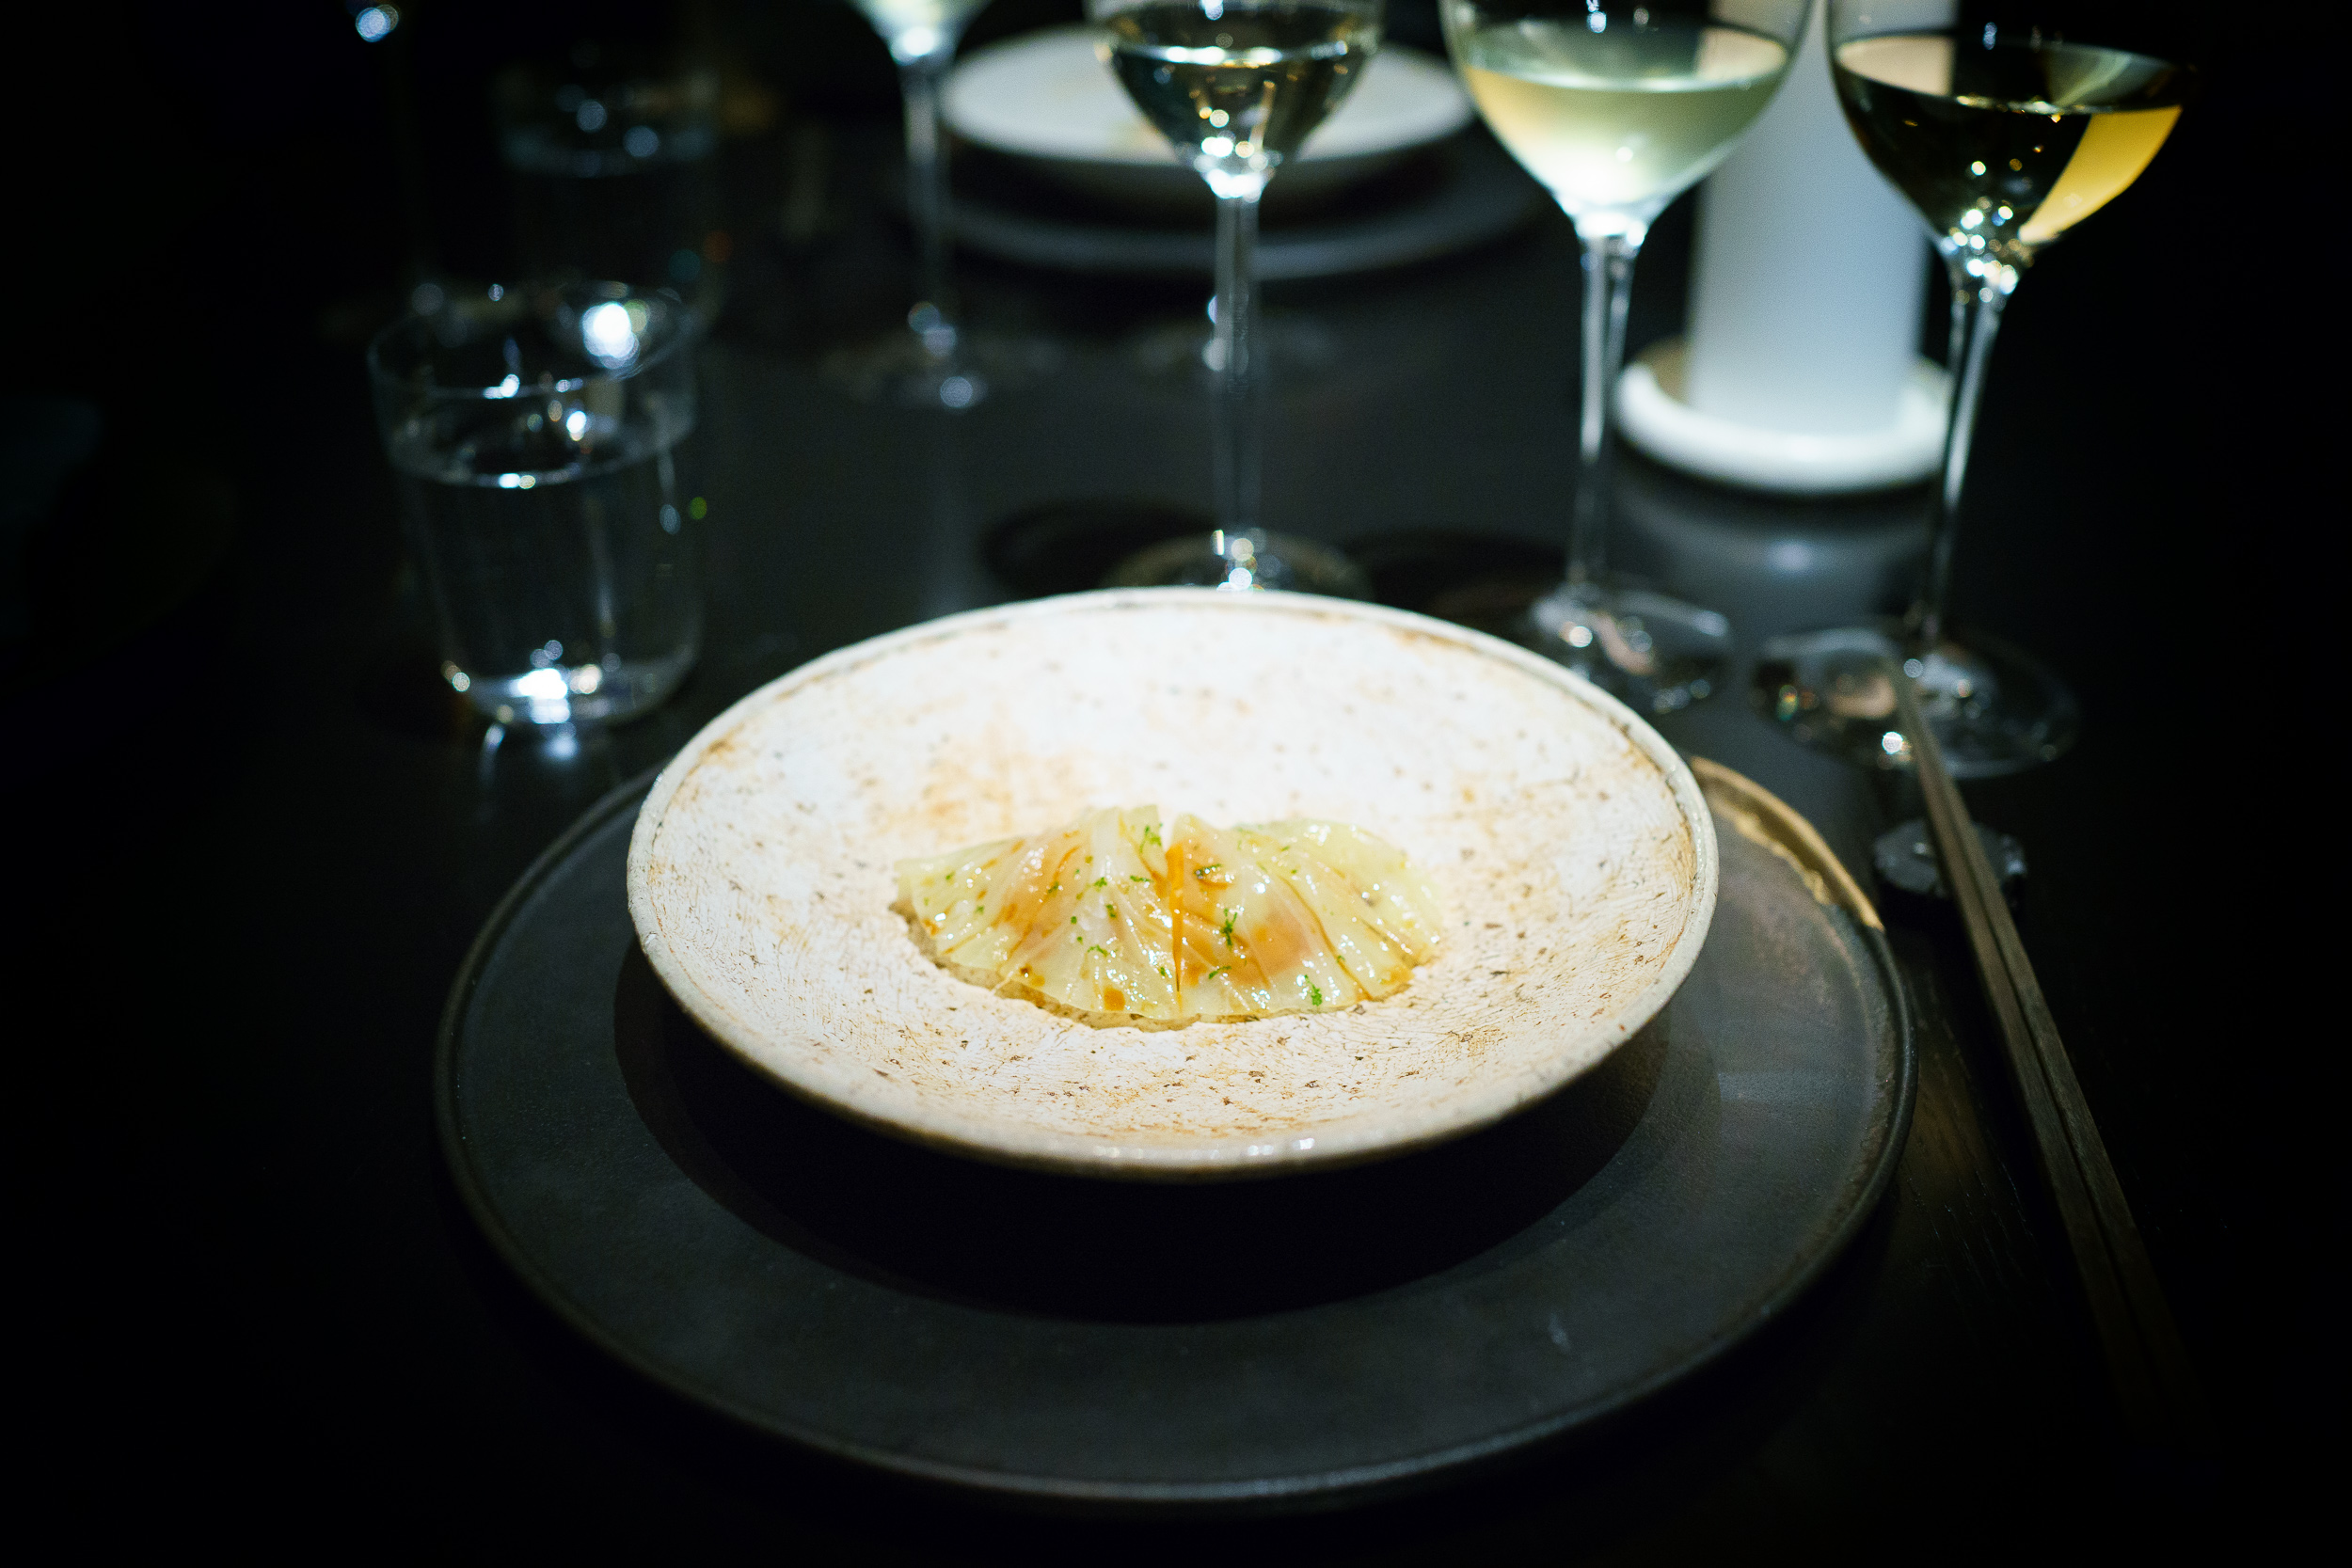 8th Course: Sea urchin and cabbage